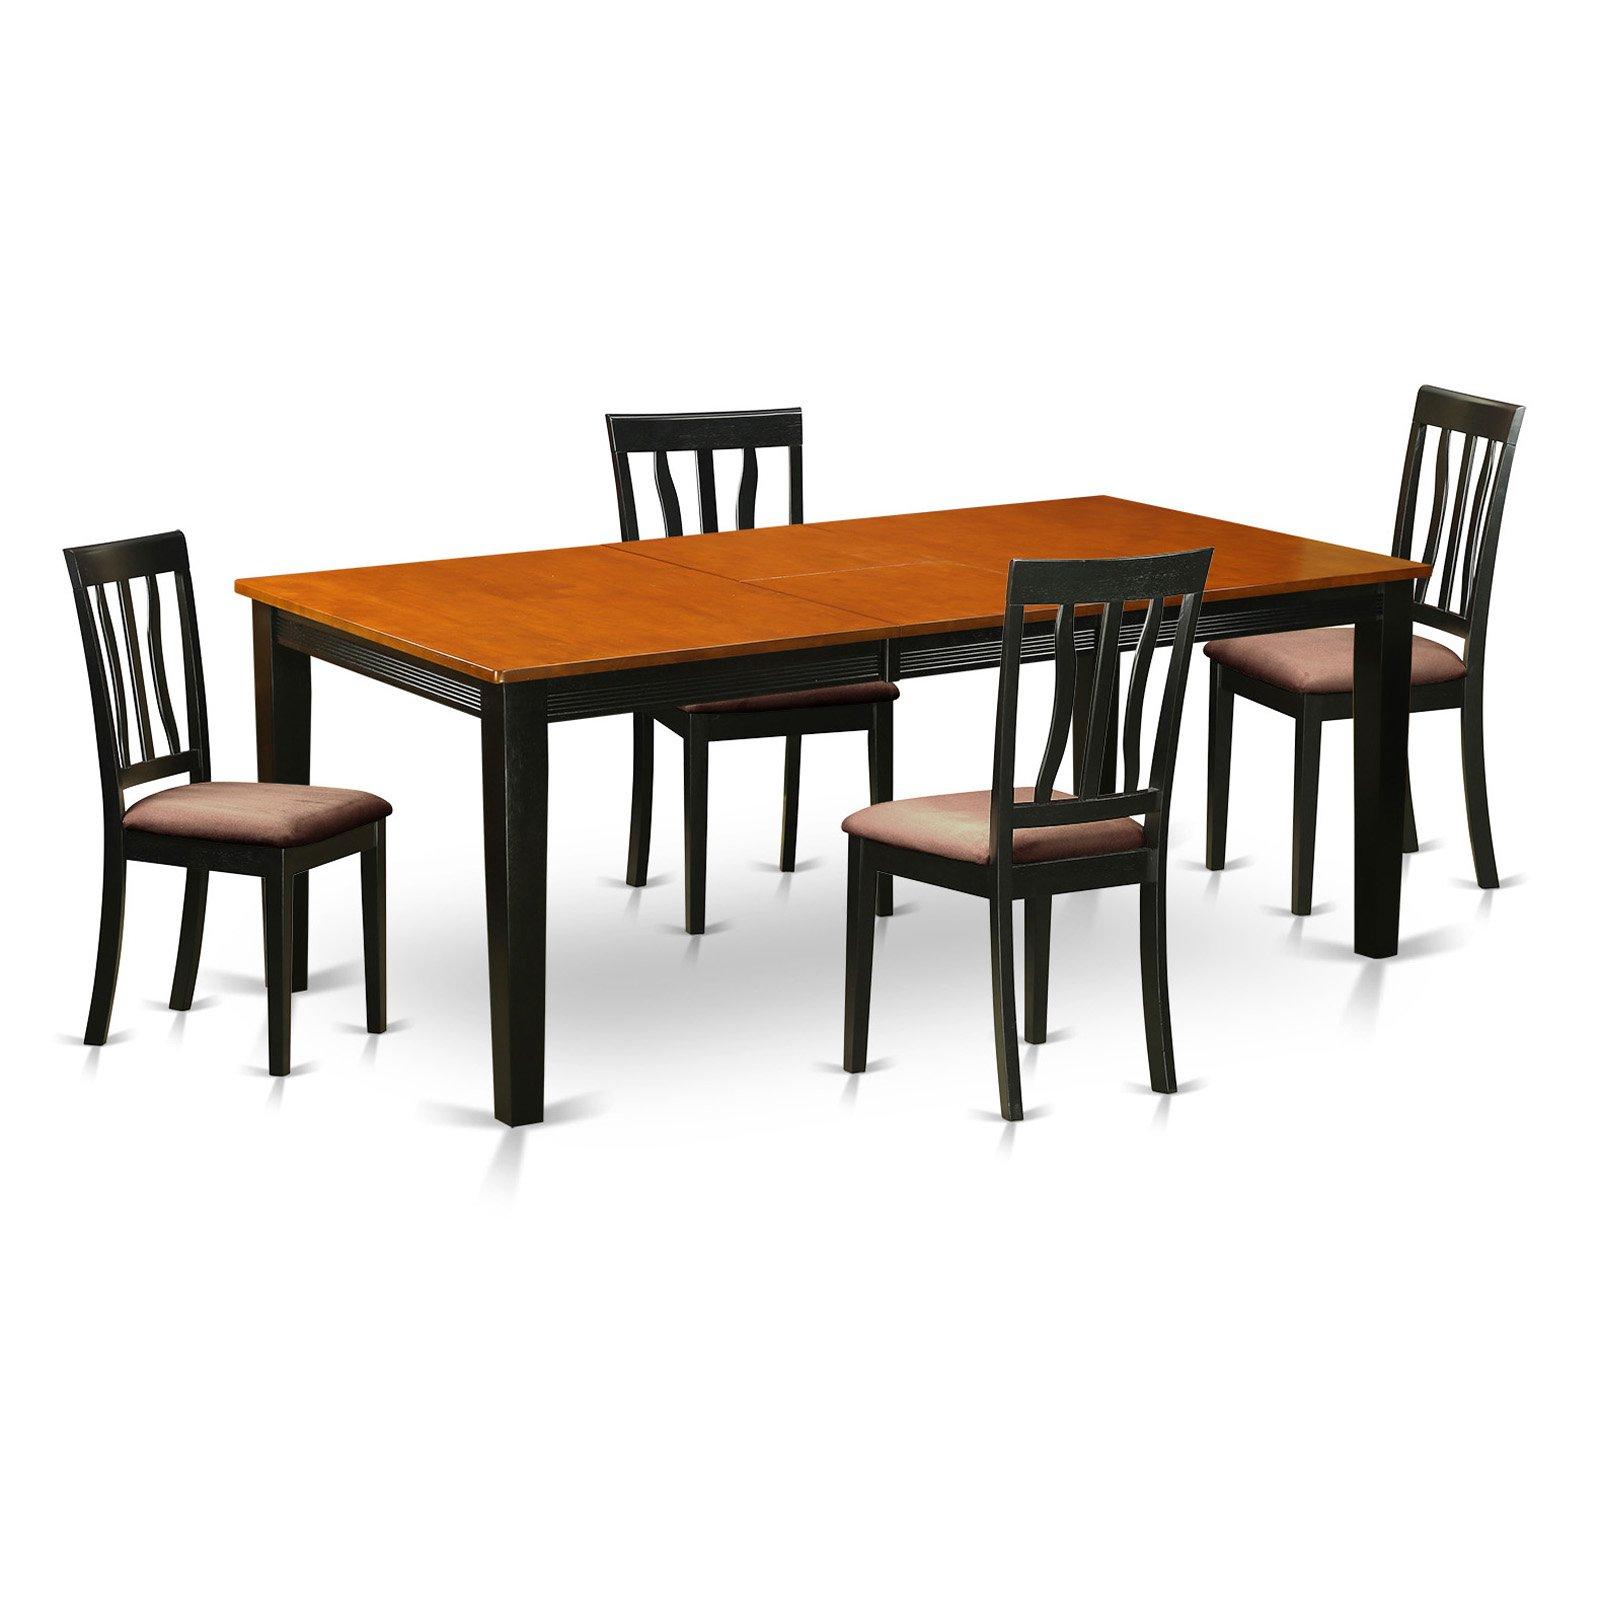 East West Furniture Quincy 5-Piece Splat Back Dining Table Set